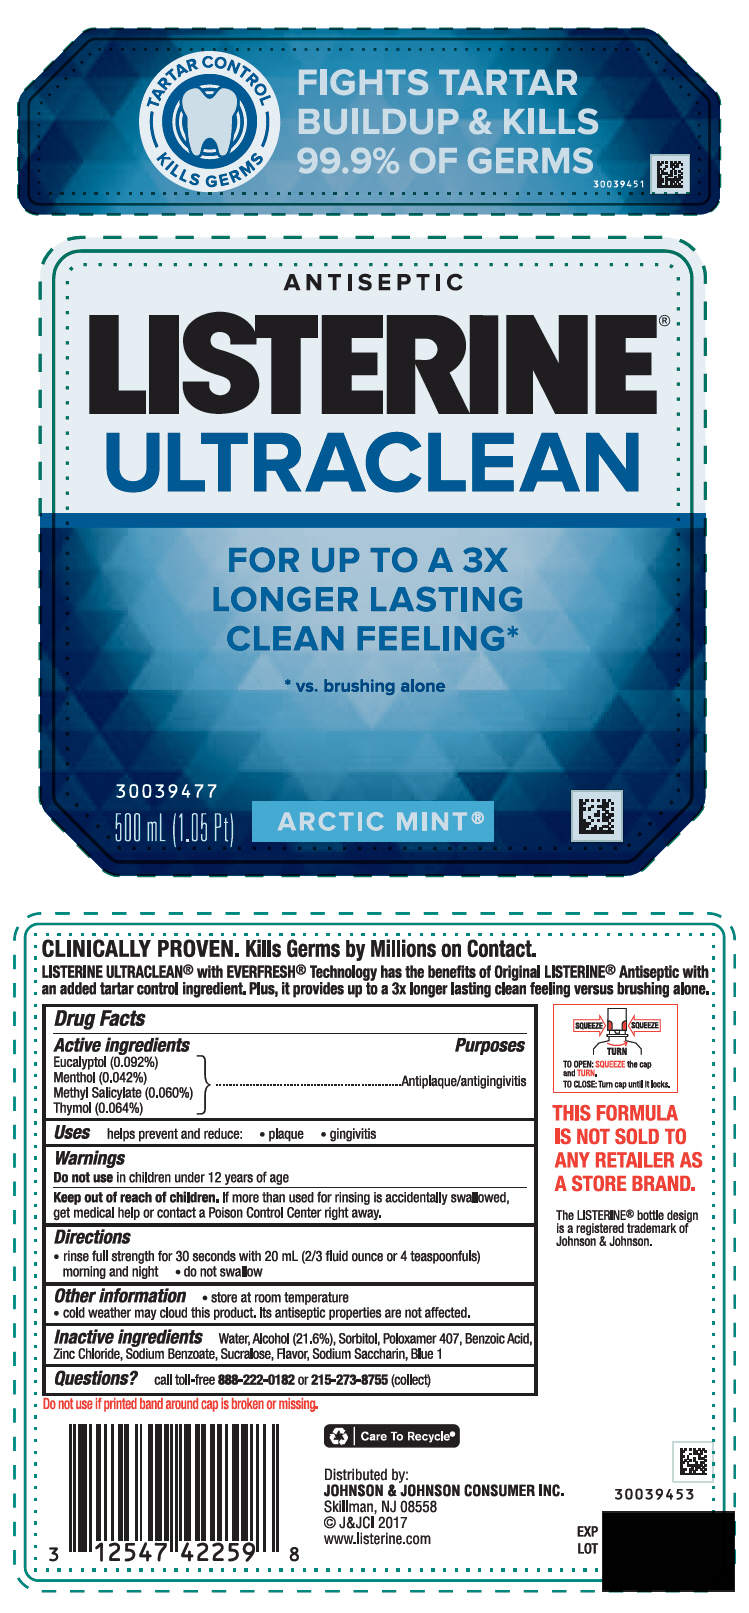 Eucalyptol, Menthol, Unspecified Form, Methyl Salicylate, and Thymol (Listerine Ultraclean Arctic Mint)